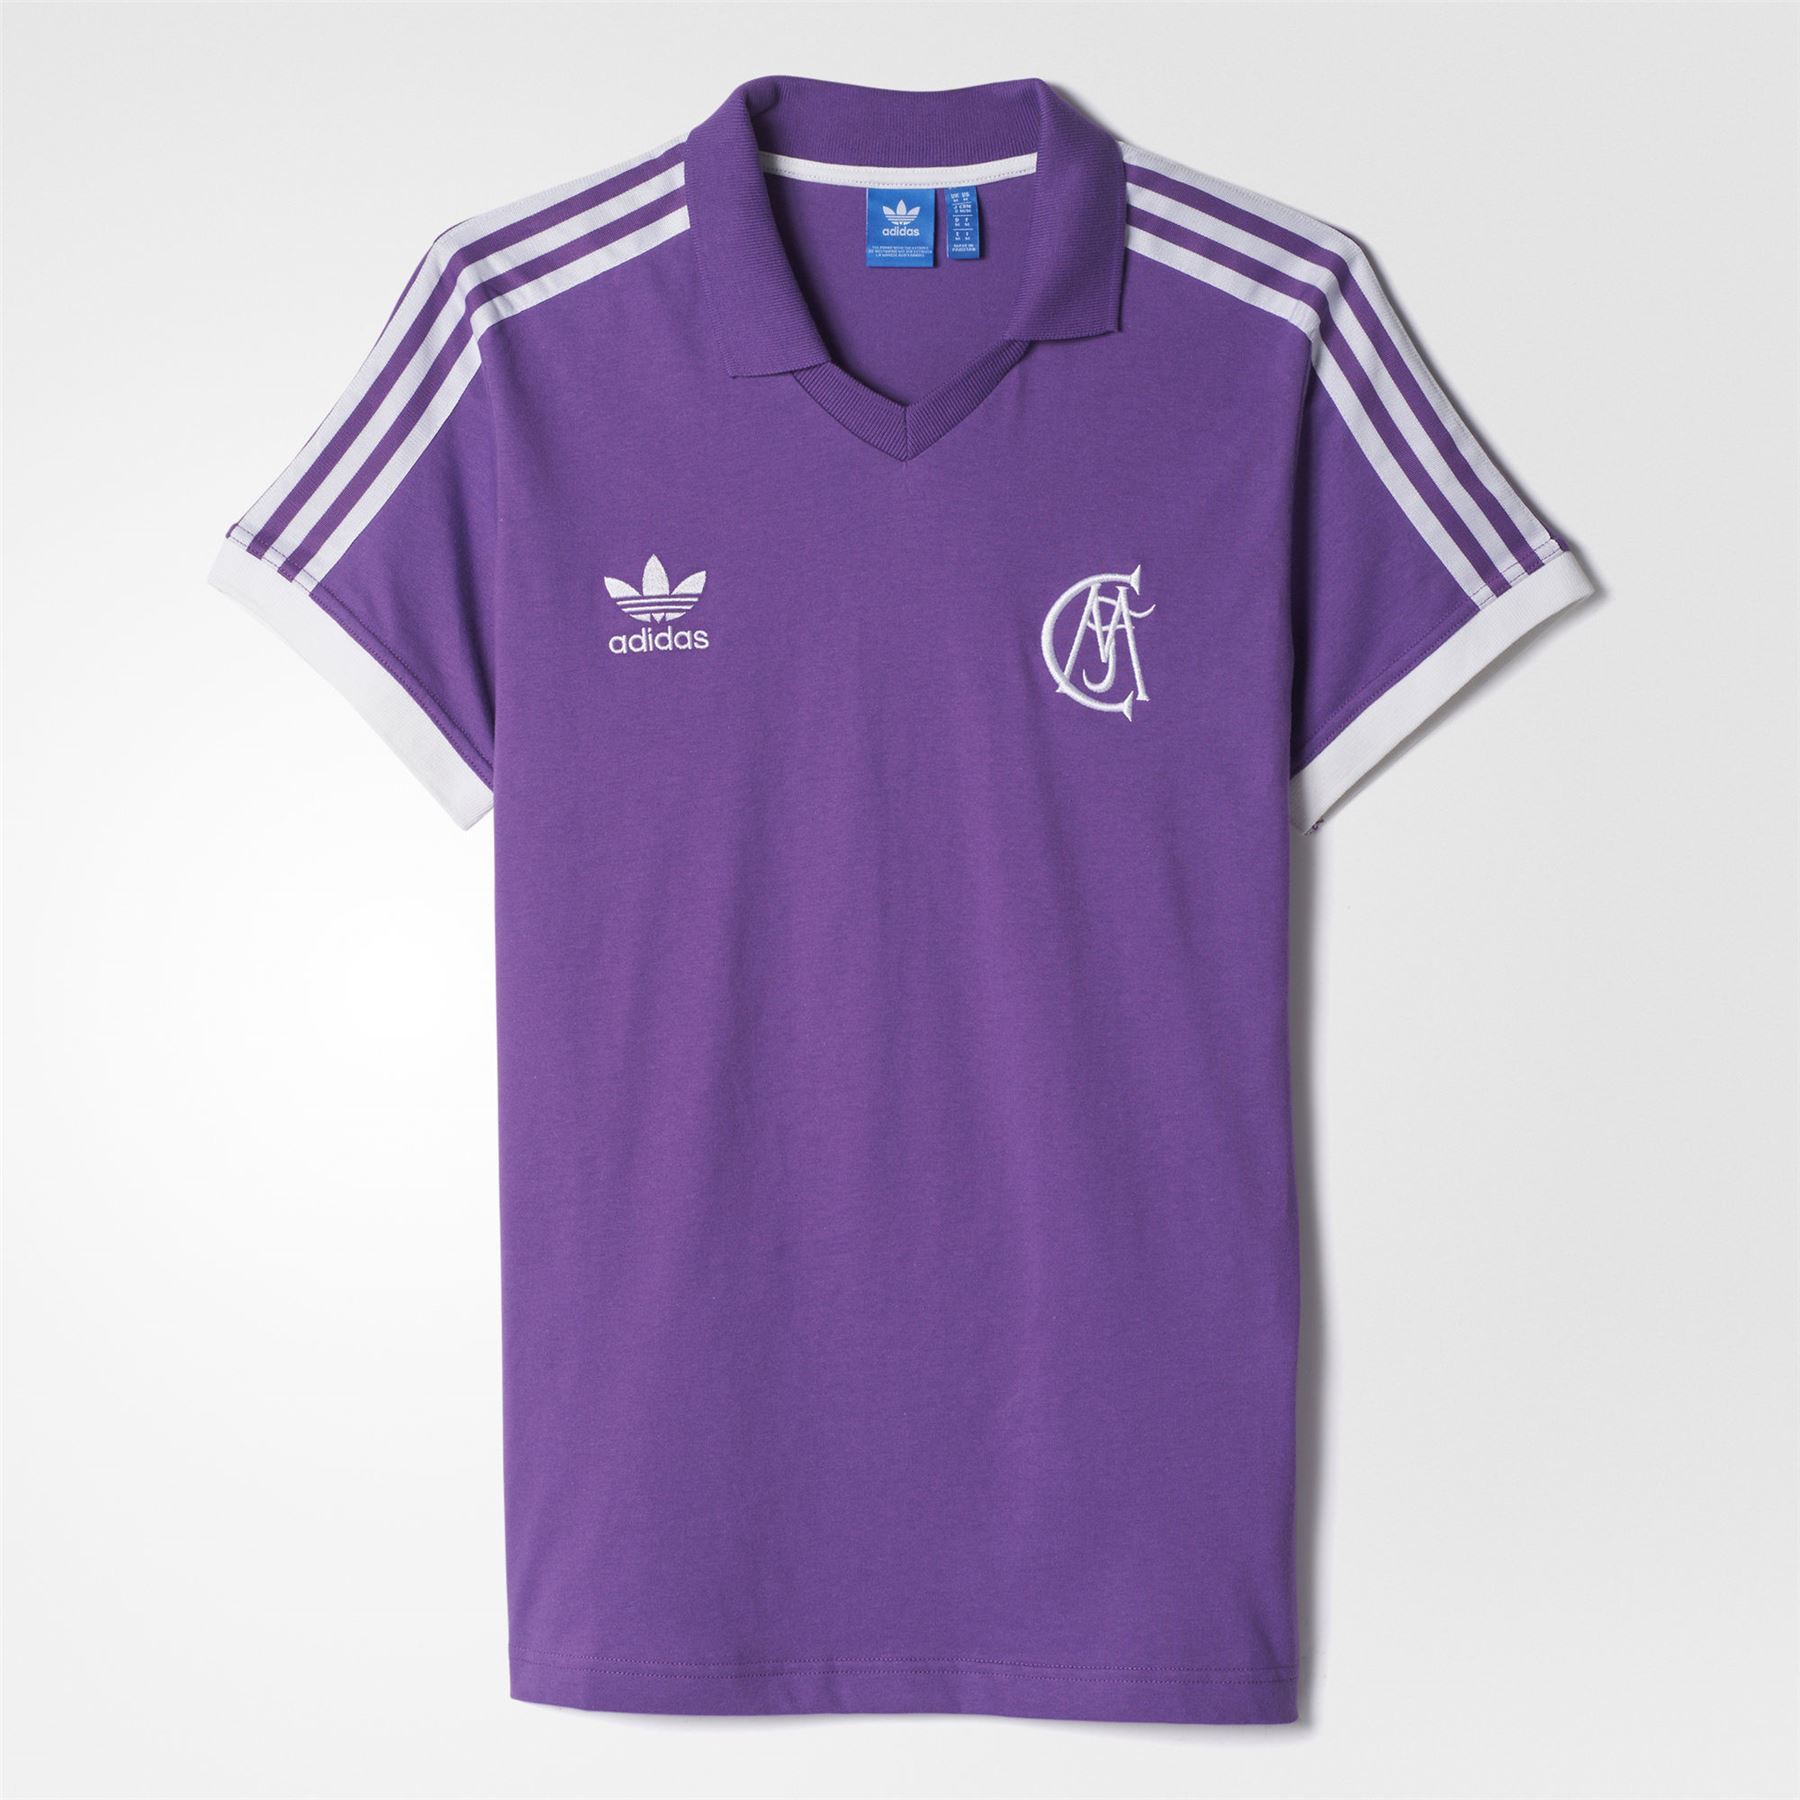 1cac6c675 adidas RETRO REAL MADRID FOOTBALL JERSEY PURPLE SPANISH SOCCER MEN S  DEADSTOCK